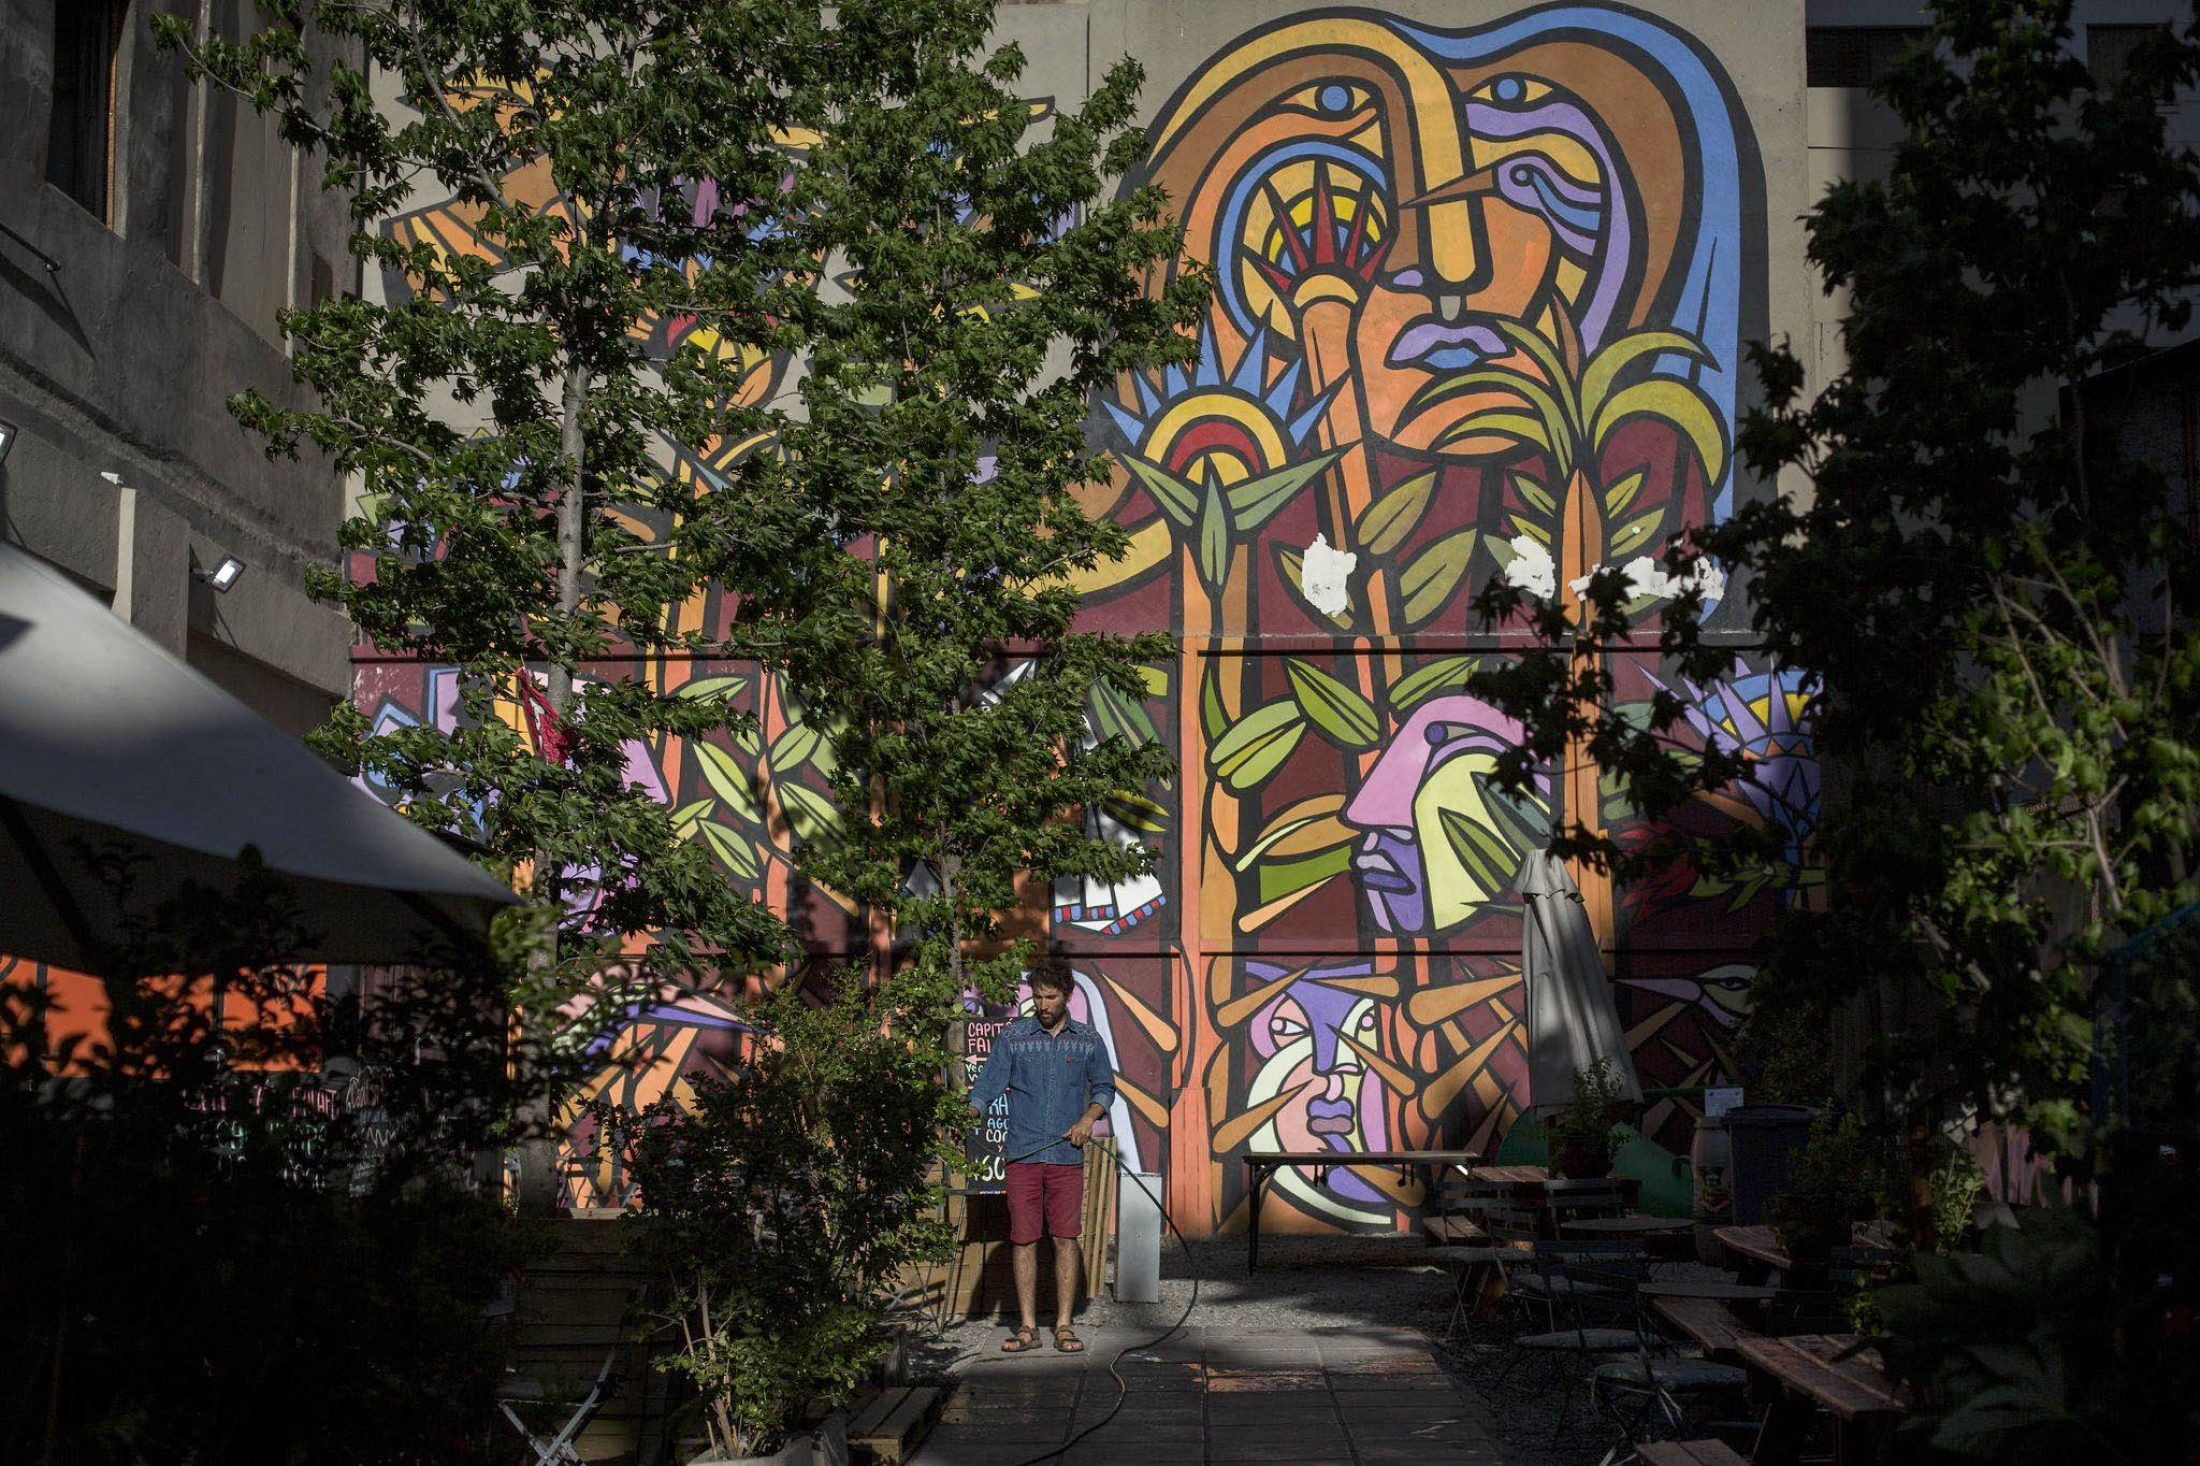 Santiago's murals bring the Sustainable Development Goals down to earth